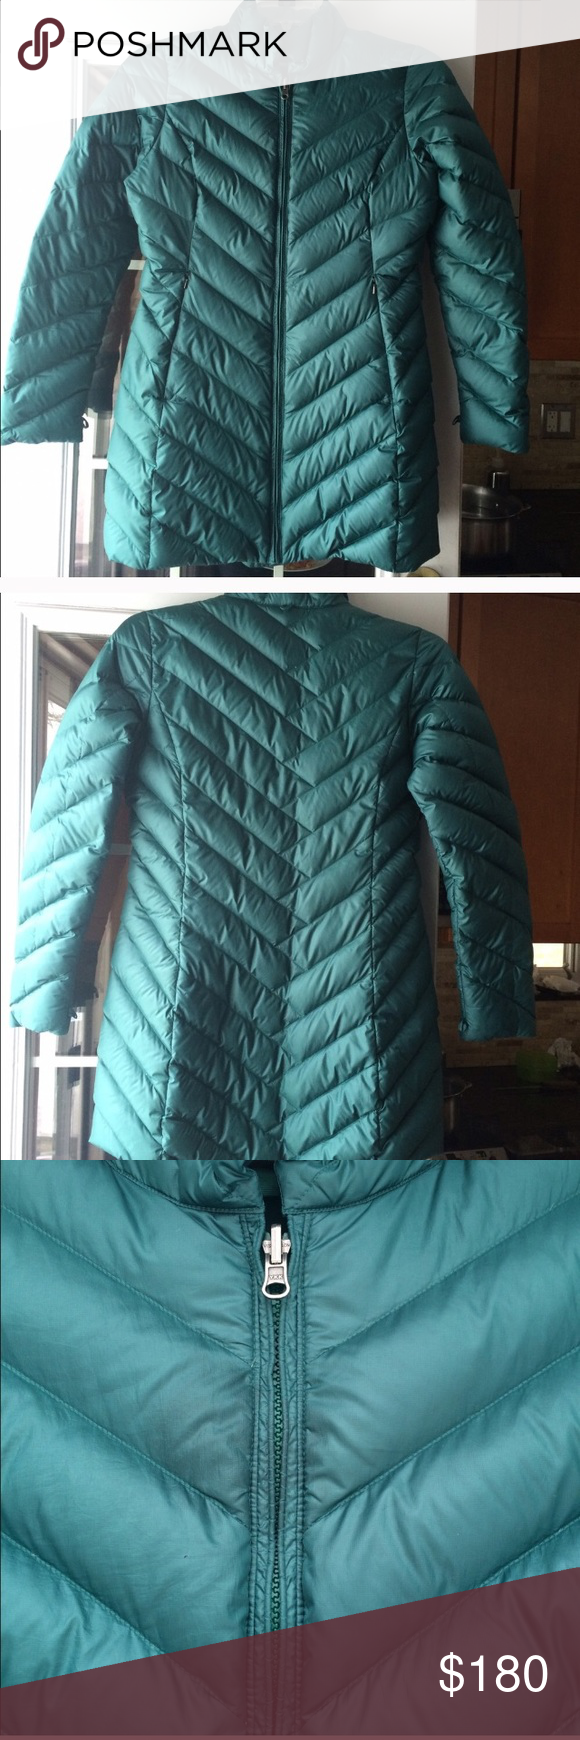 Patagonia Down Puffer Jacket Jackets, Clothes design